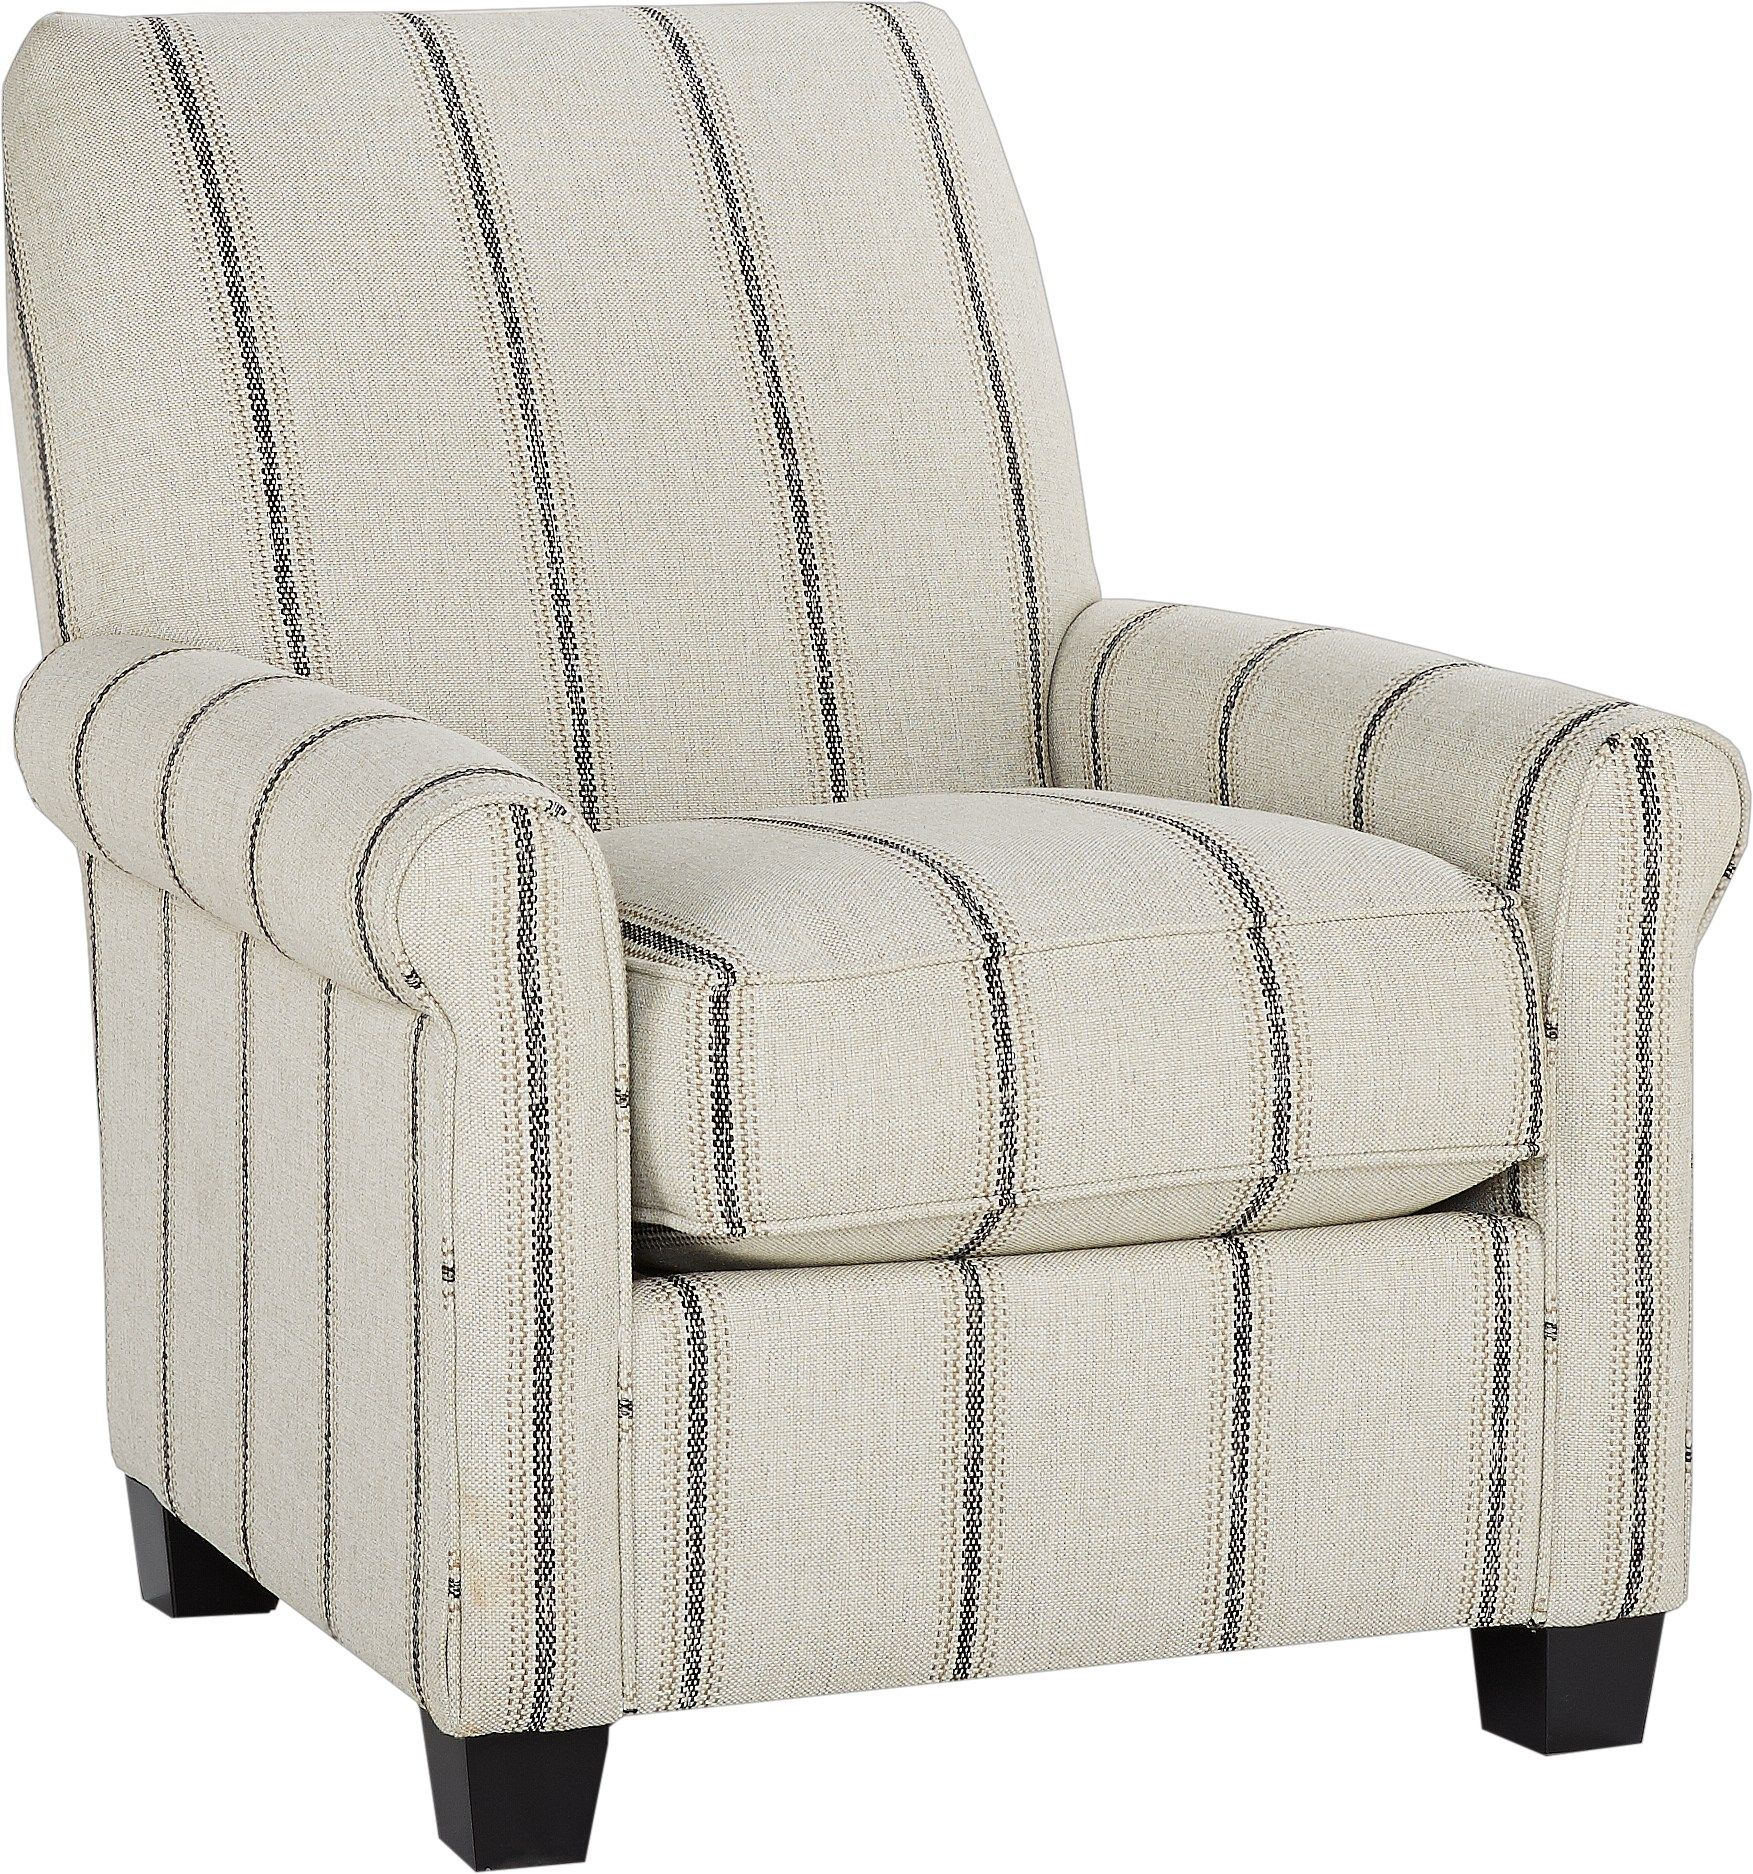 Cindy Crawford Home Lincoln Square Beige Accent Chair .599.99. 32W X 35D X  37H. Find Affordable Accent Chairs For Your Home That Will Complement The  Rest Of ...